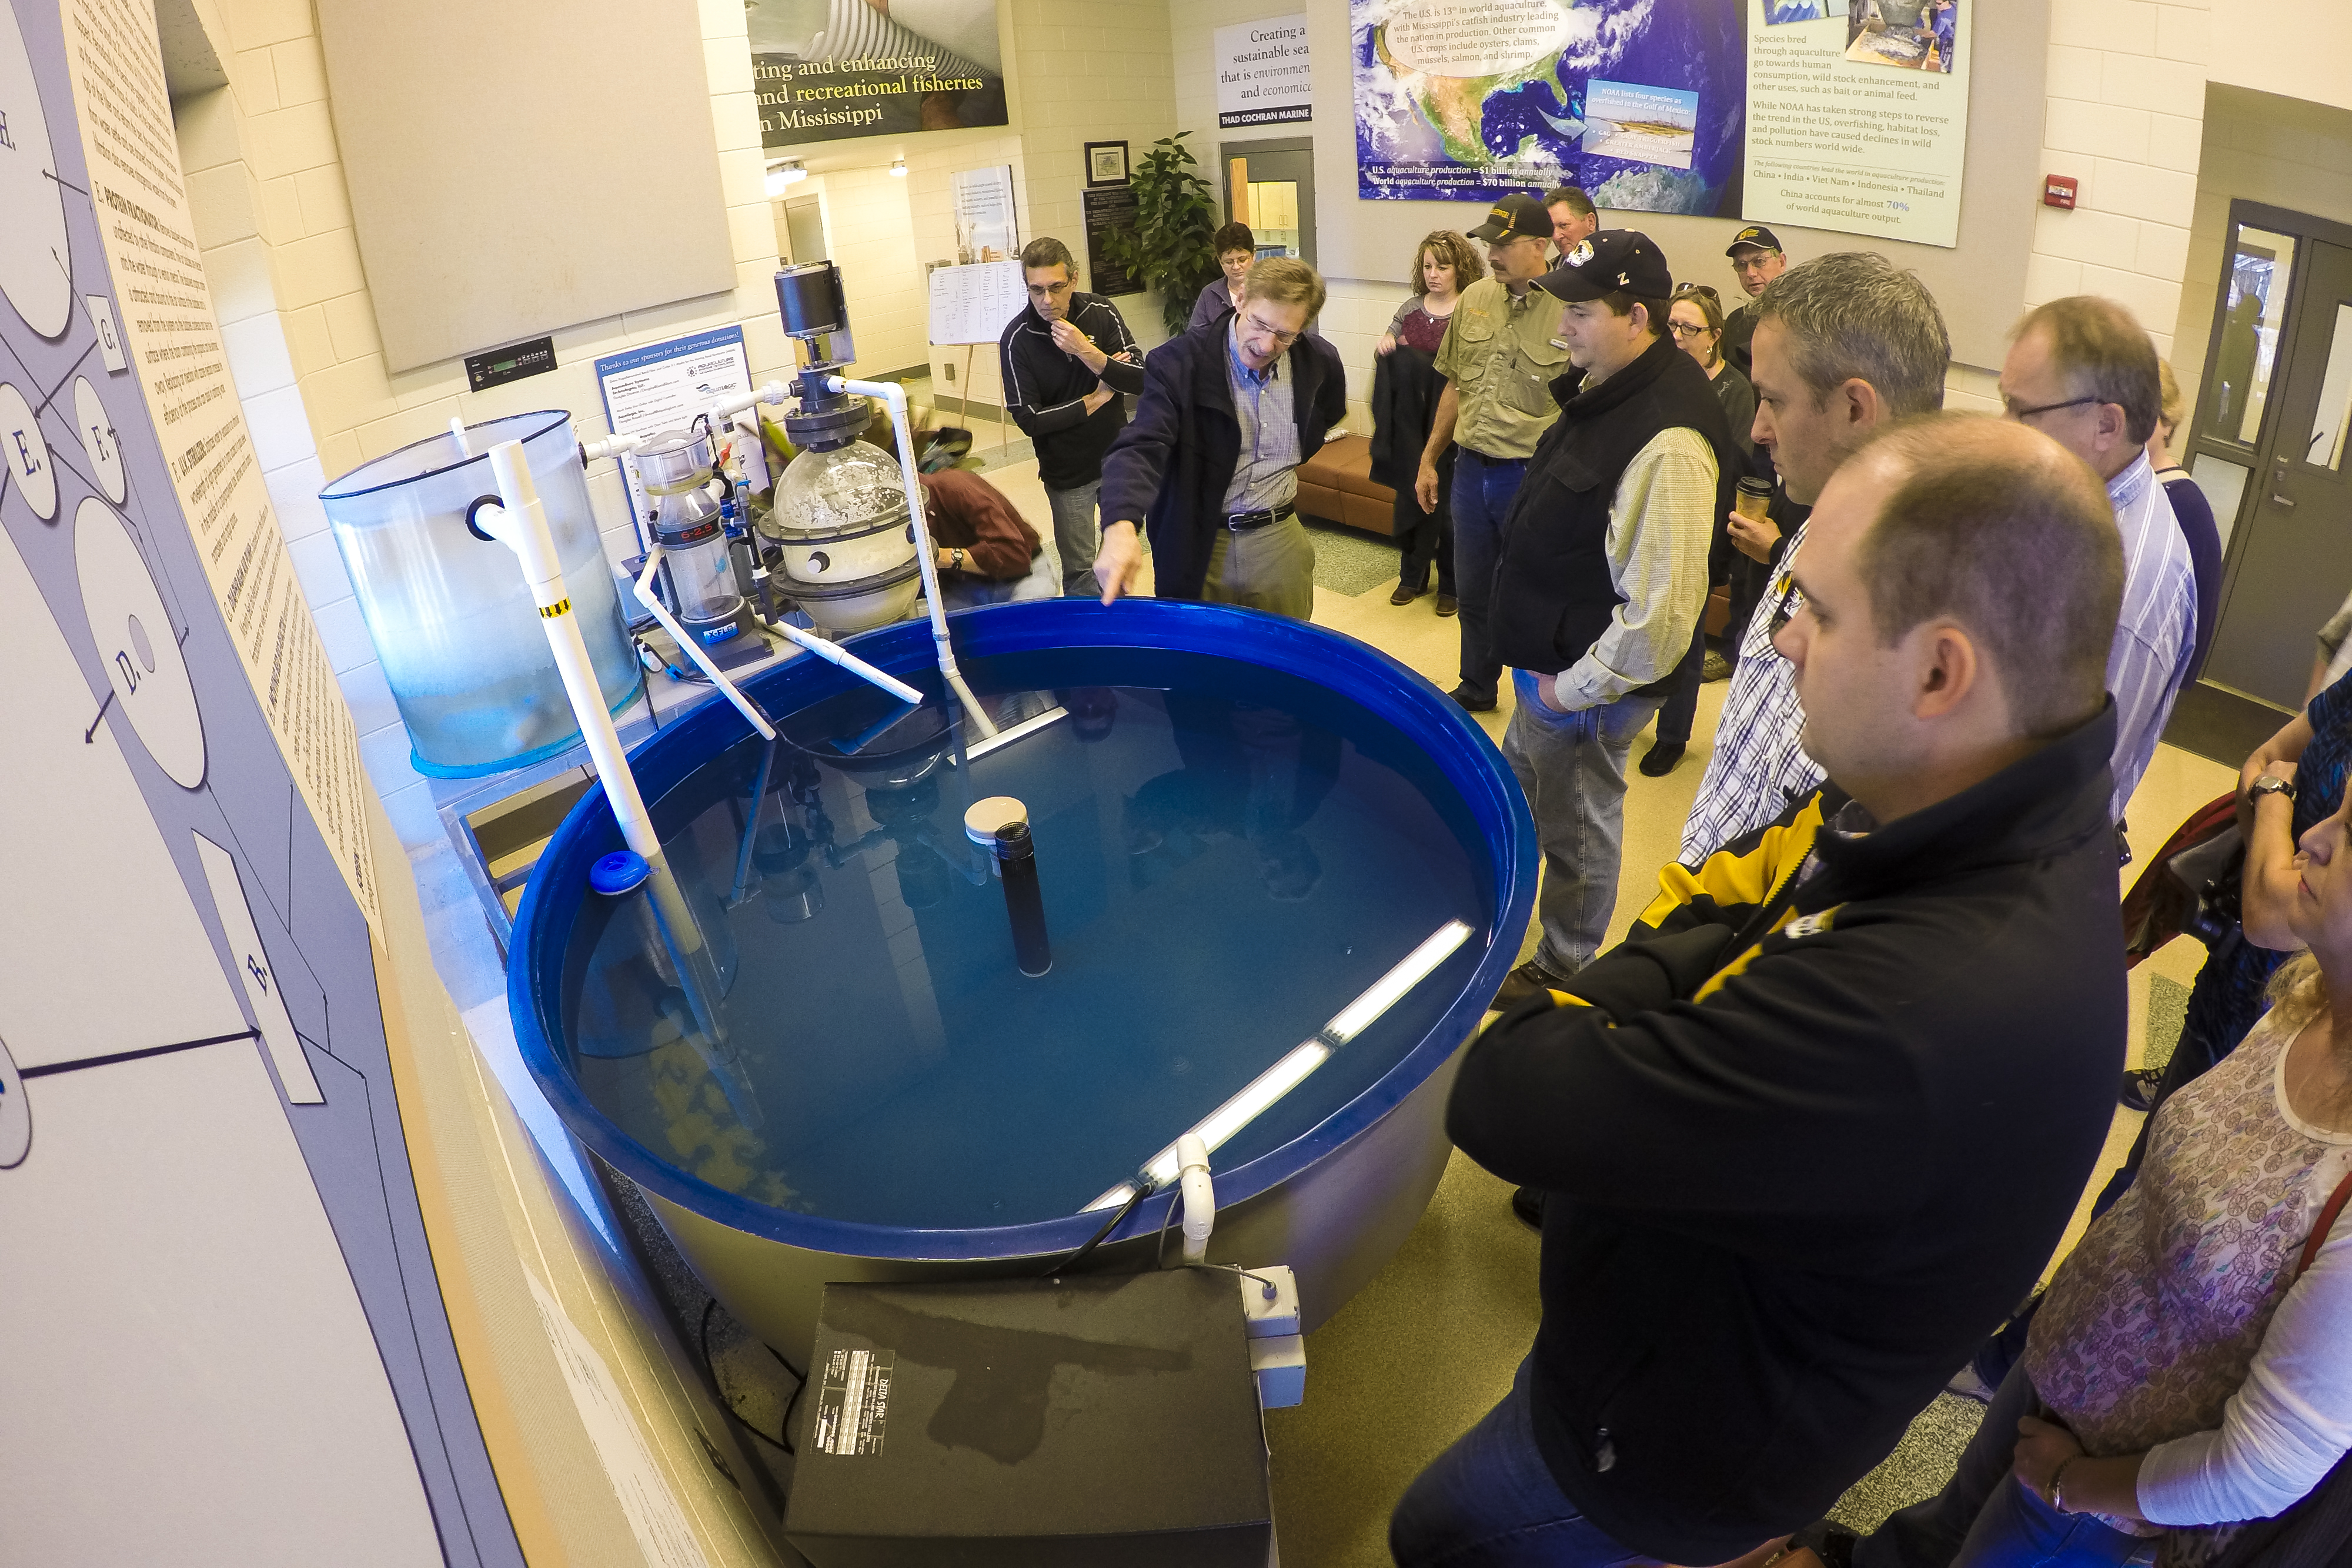 The group toured the Thad Cochran Marine Aquaculture Center on Dec. 2. Stops included overiews of the aquaculture studies, seatrout restocking efforts and shrimp farming labs.